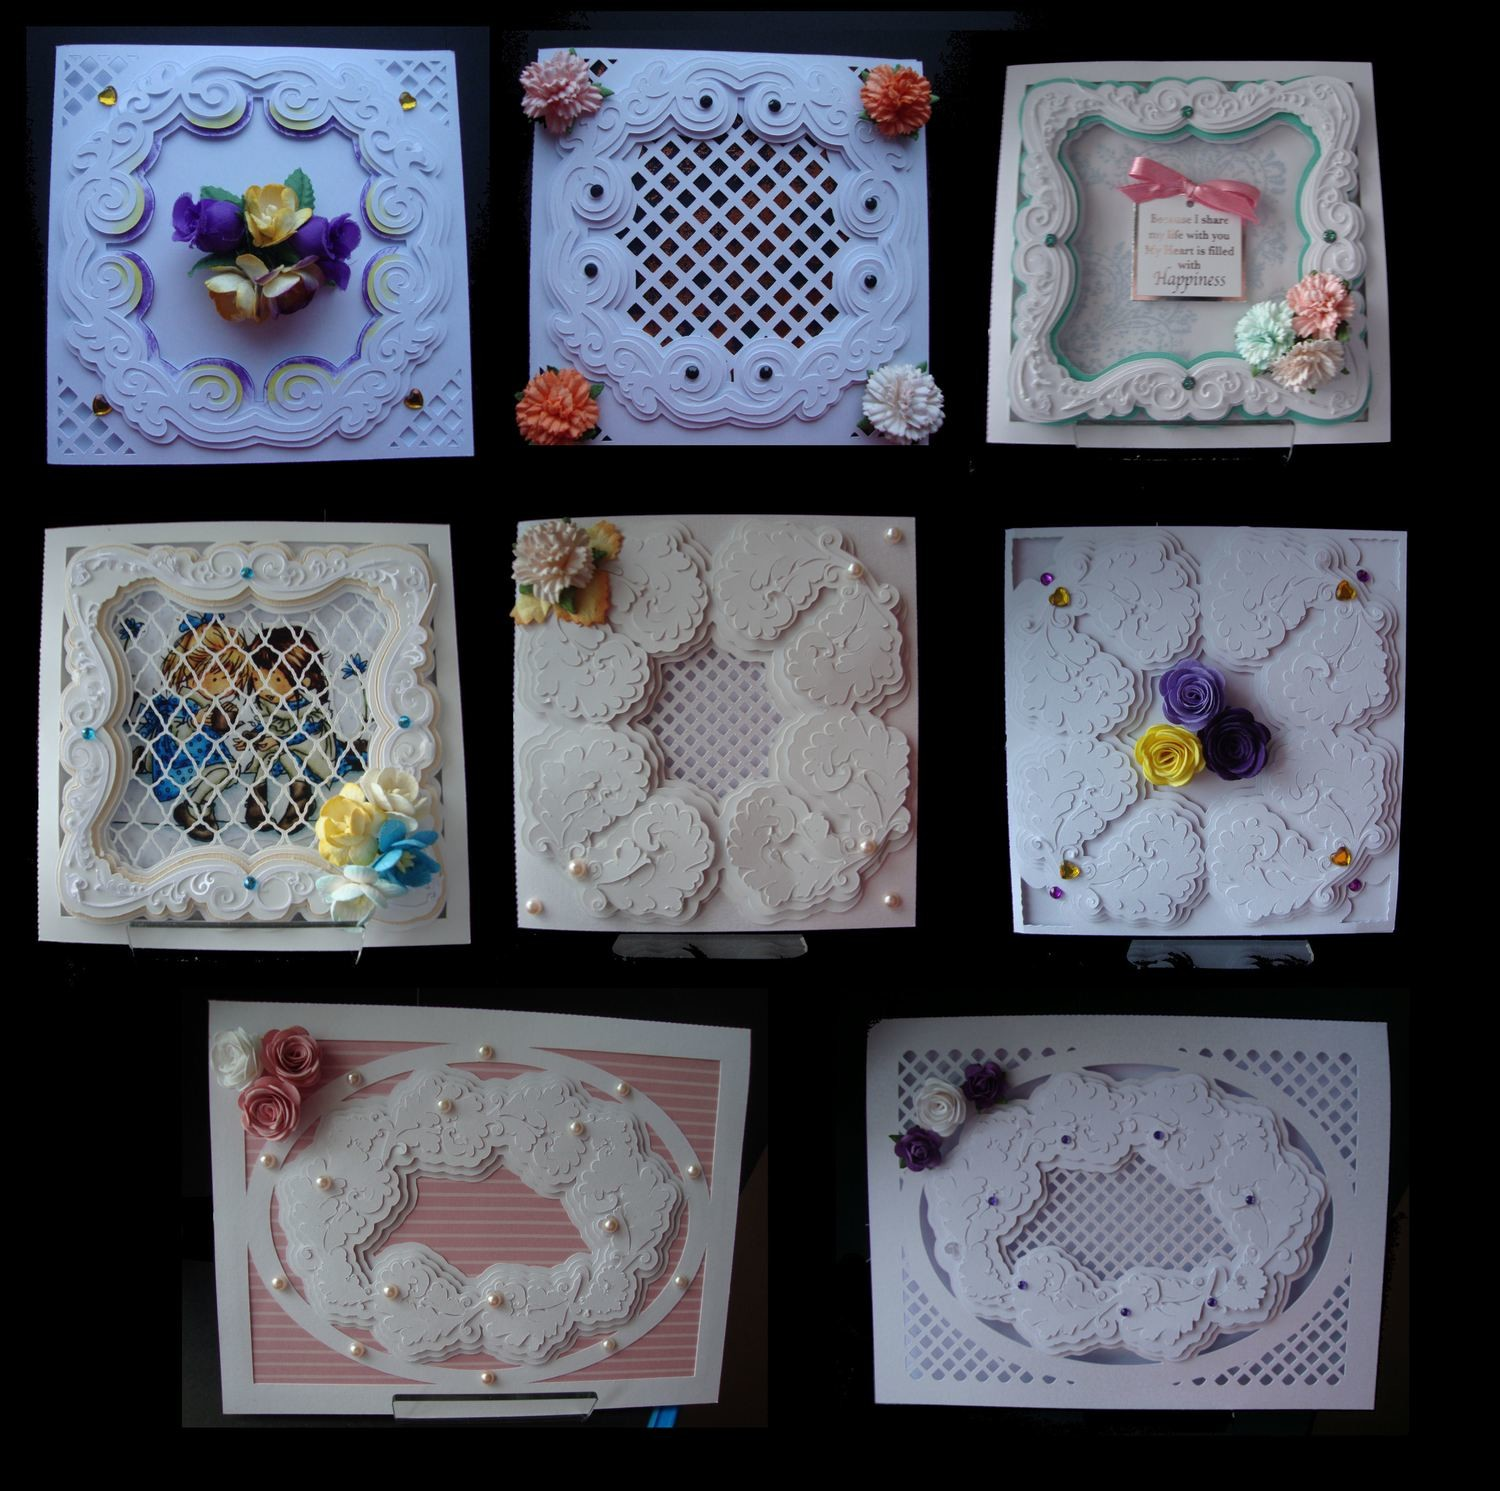 Faux Embossed Card Templates FULL SET No. 1 to No. 8   £6.00 saving  SVG